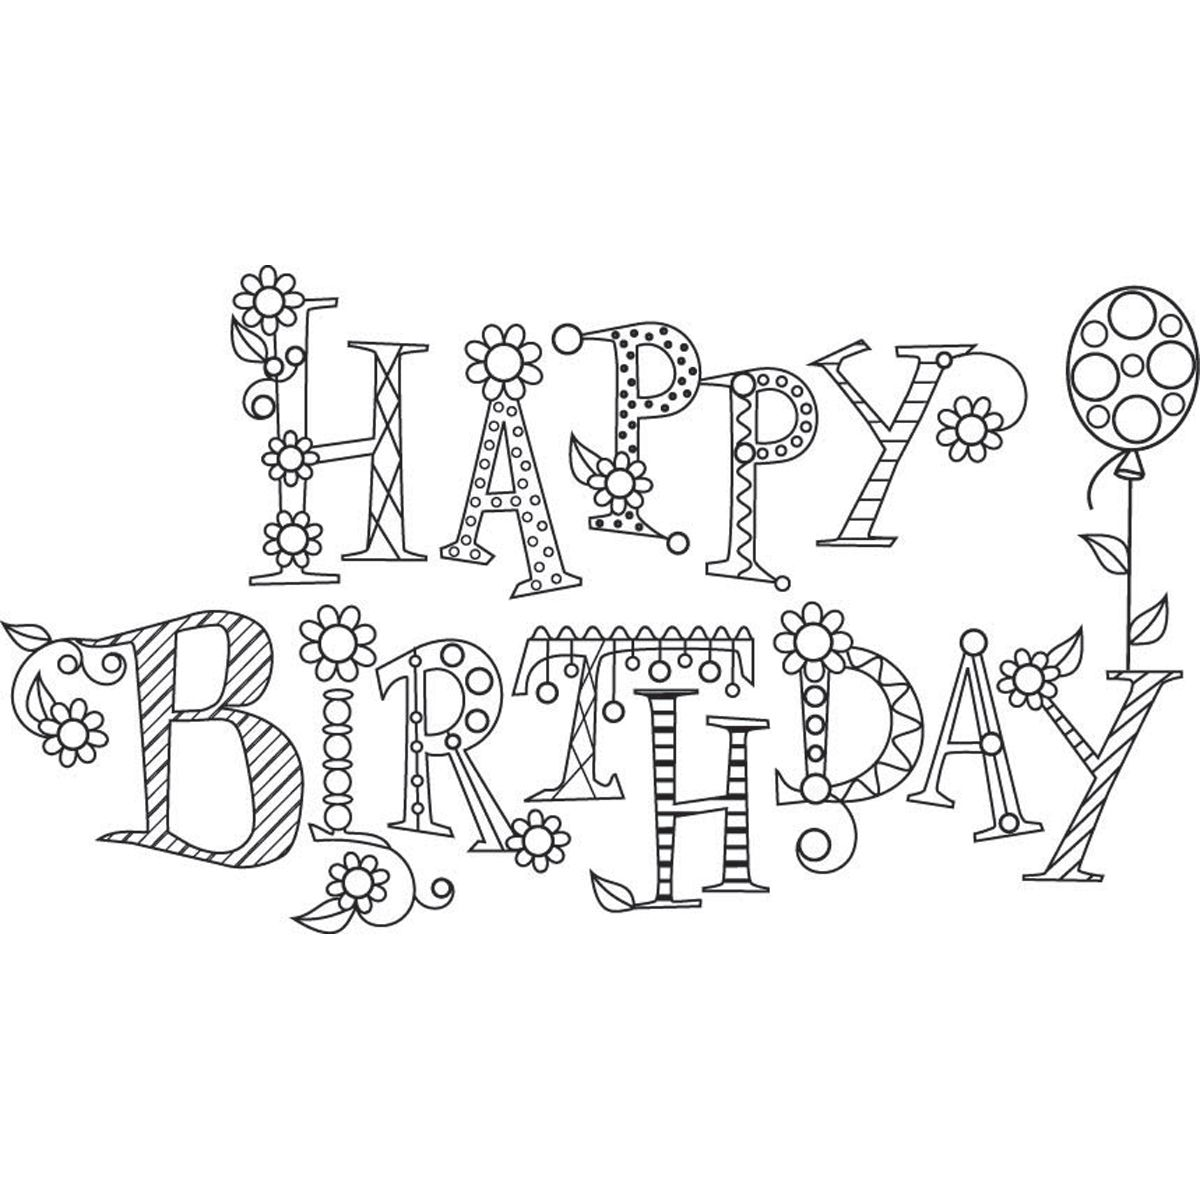 happy birthday coloring letters pin by mayra on birthday in 2020 happy birthday coloring letters happy coloring birthday